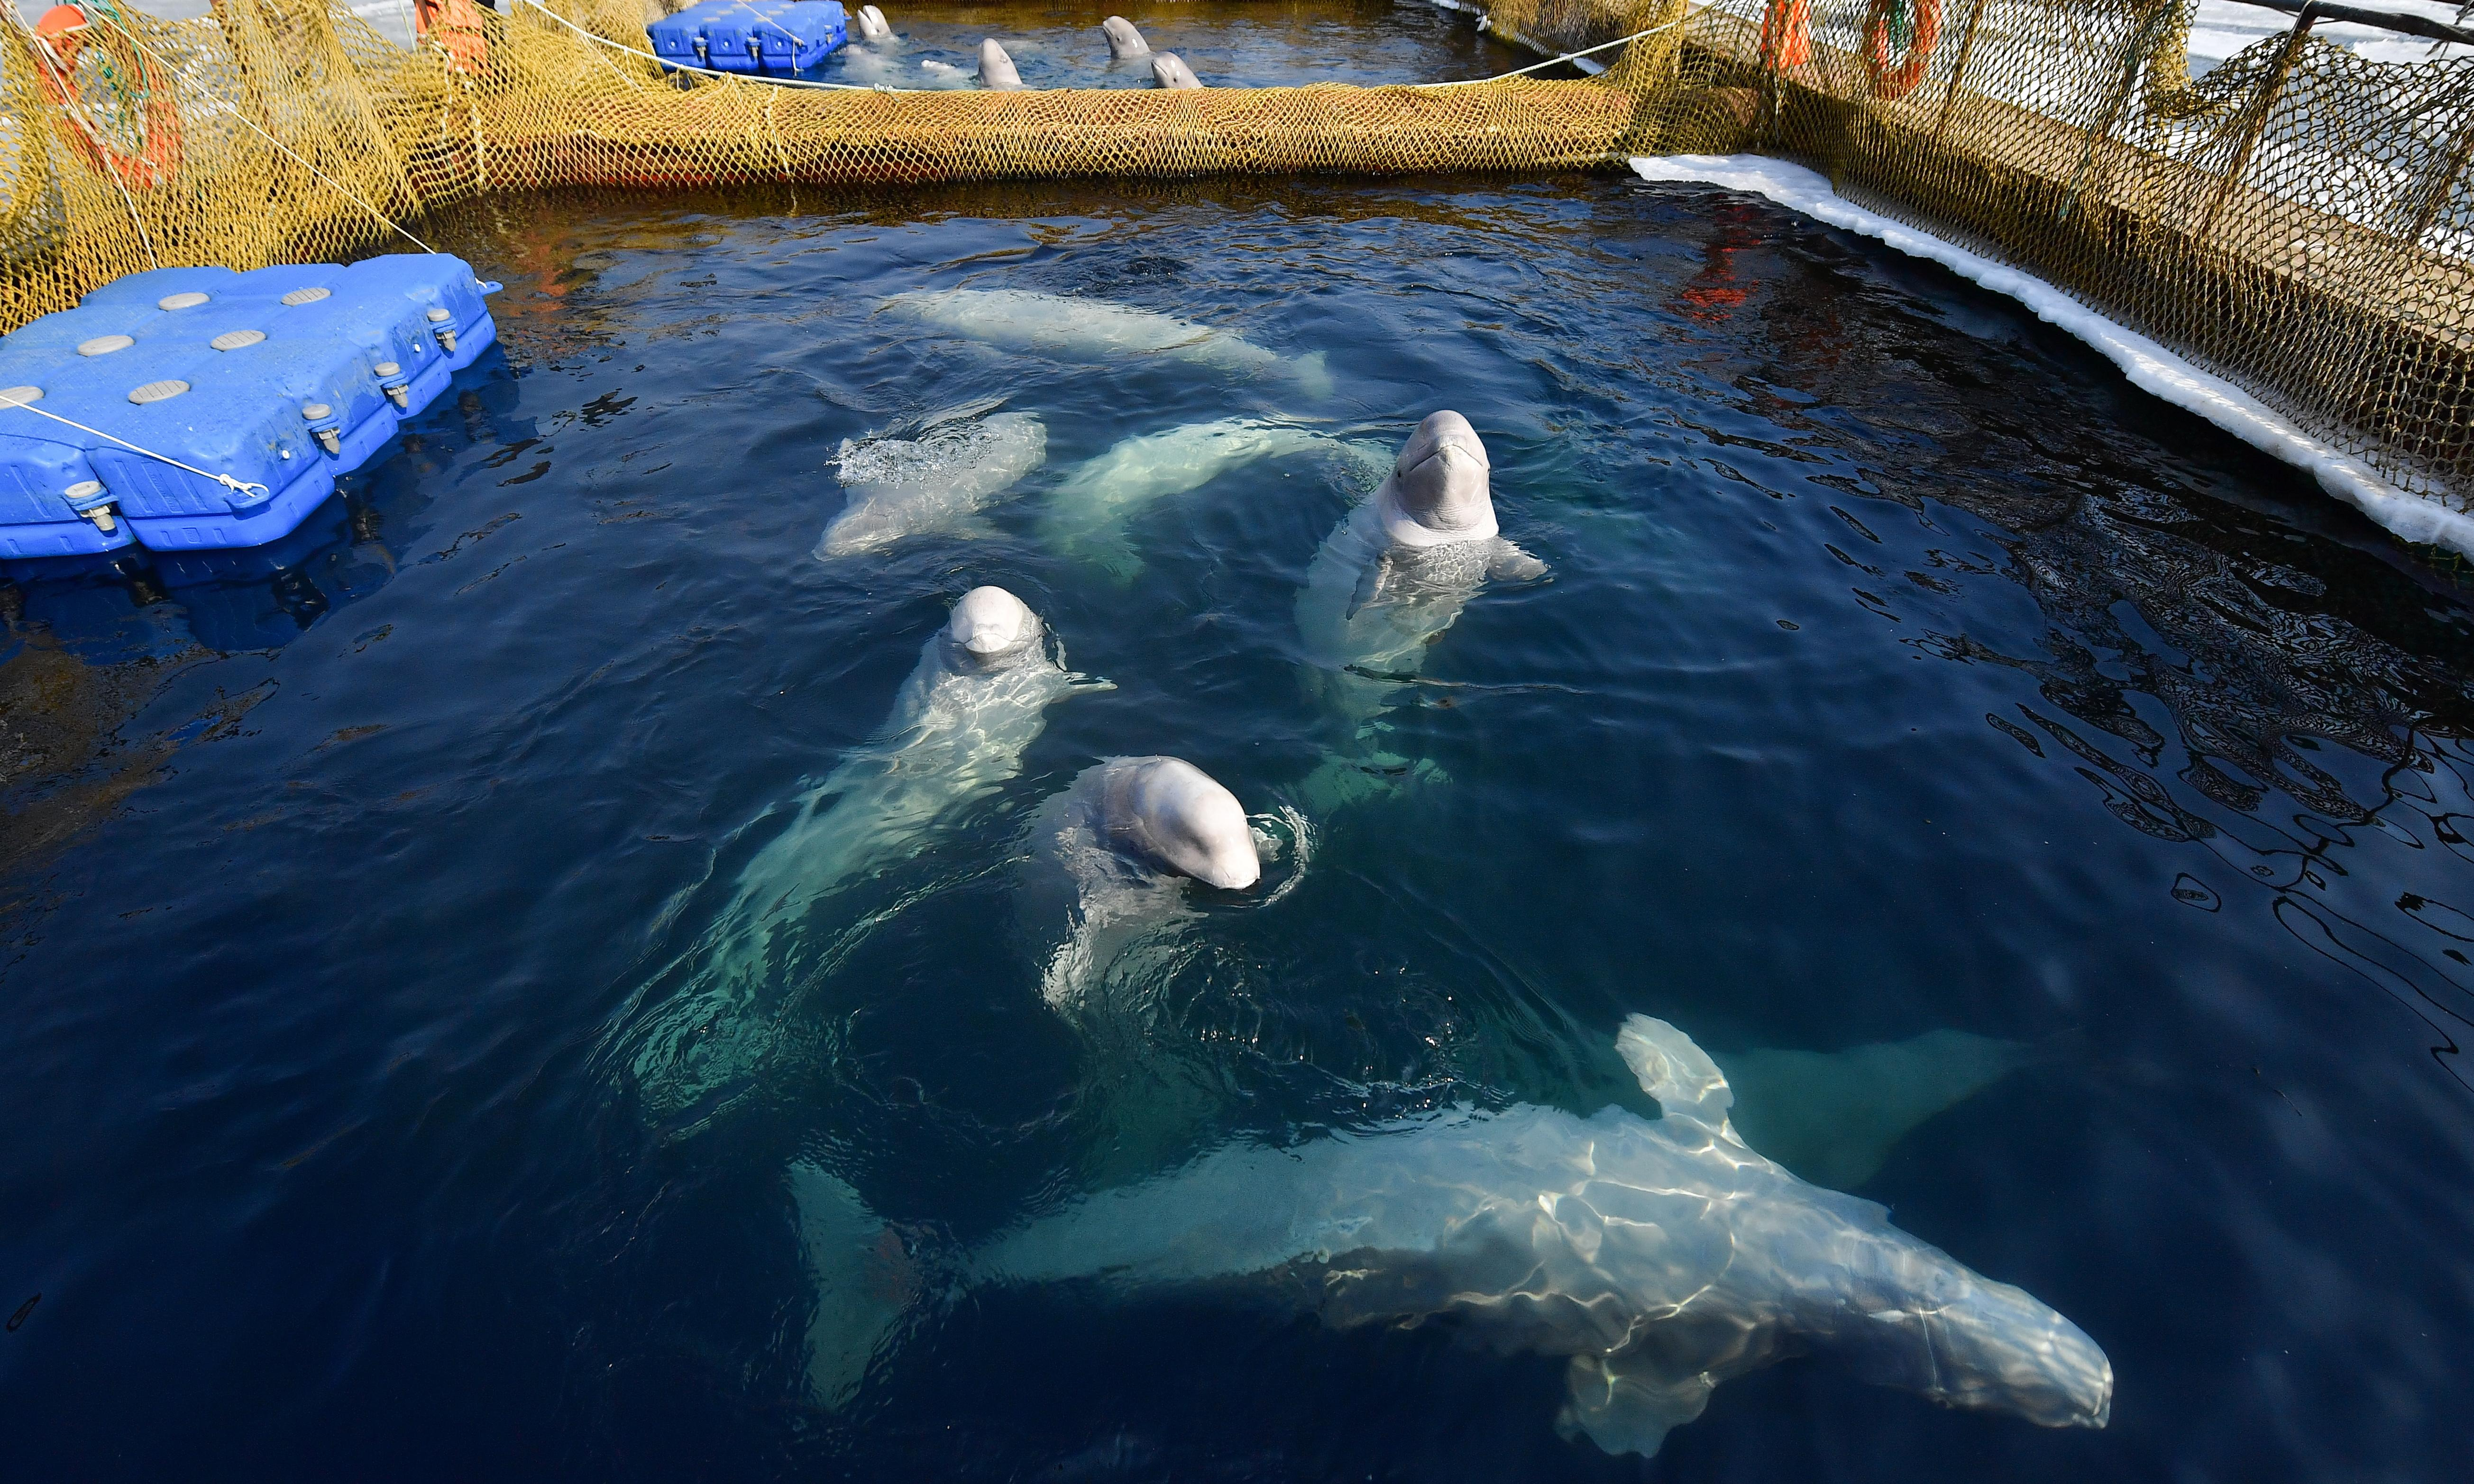 Russia moves to free nearly 100 captive whales after outcry